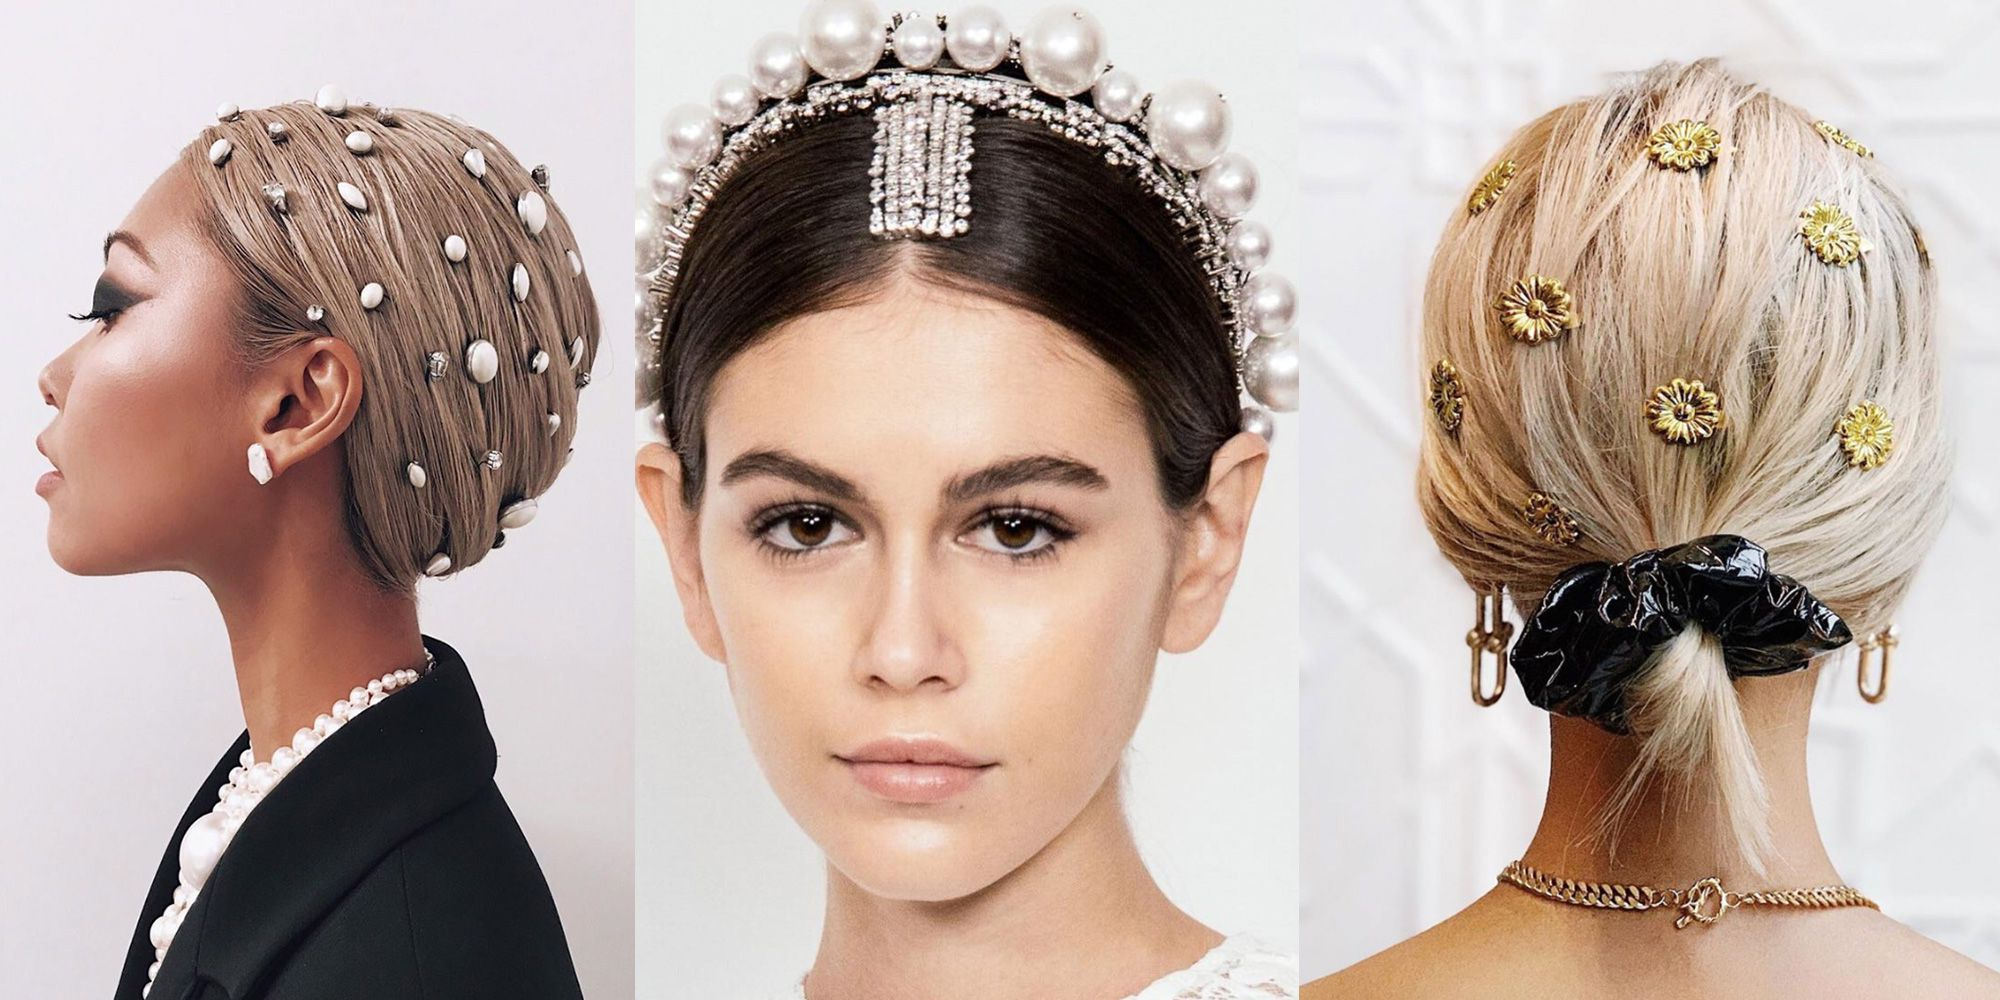 37 Short Wedding Hairstyles – Bridal Updos, Braids, And Inside Most Popular Double Headband Braided Hairstyles With Flowers (Gallery 15 of 20)